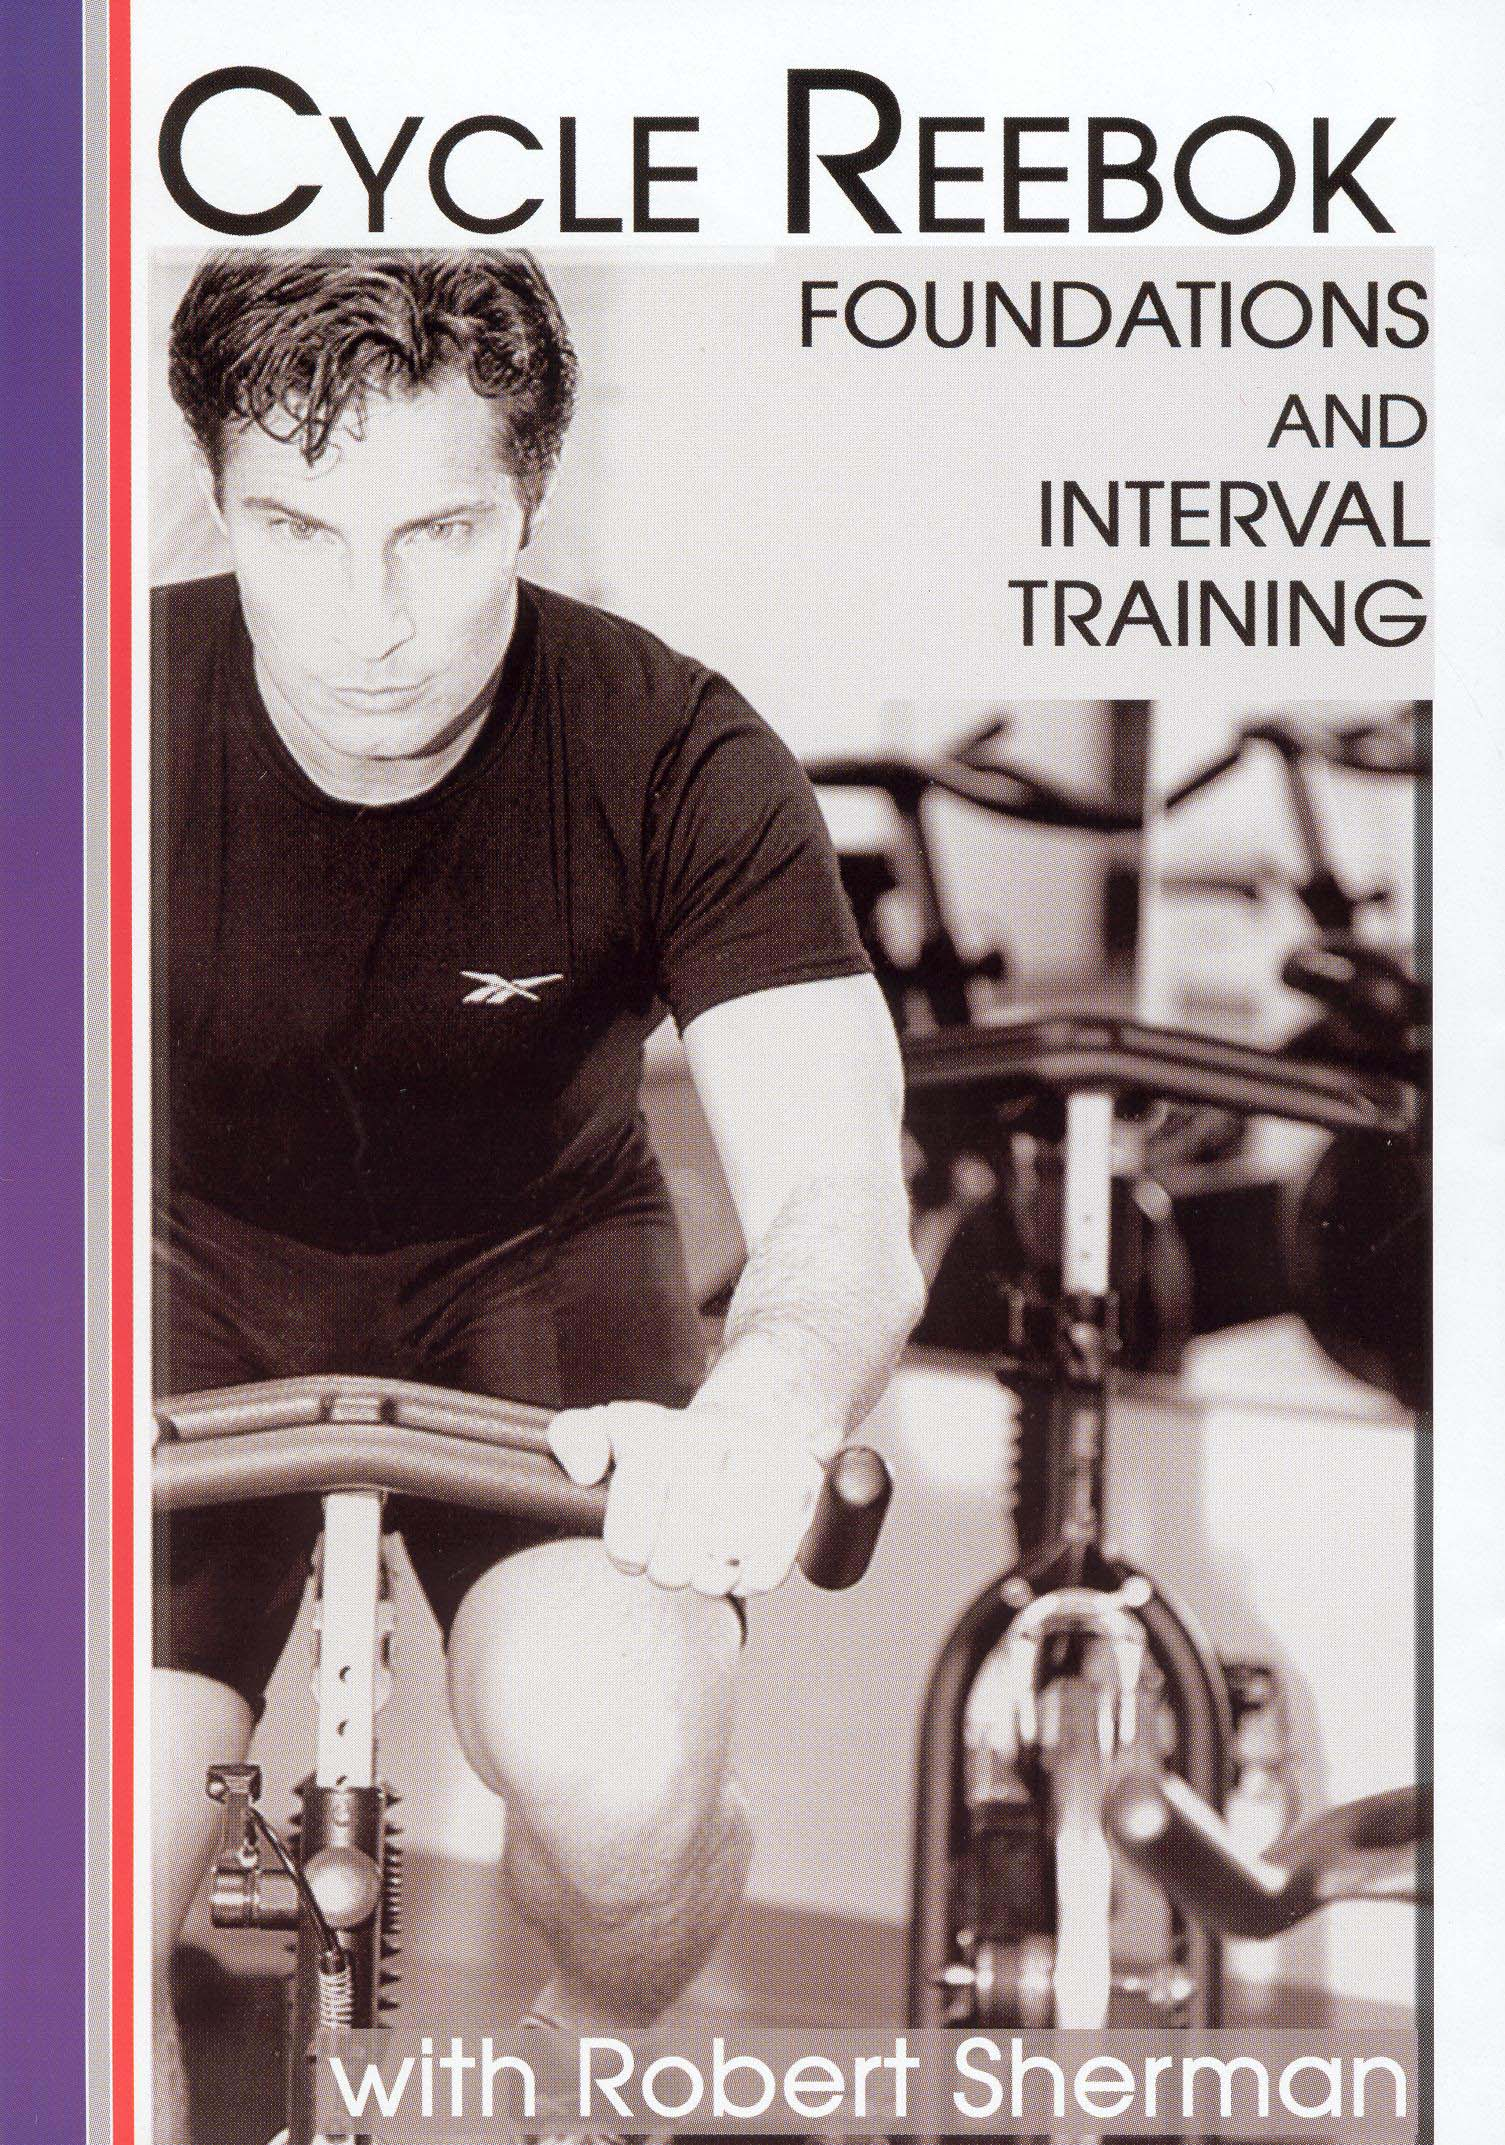 Robert Shemna: Cycle Reebok - Foundations and Interval Training